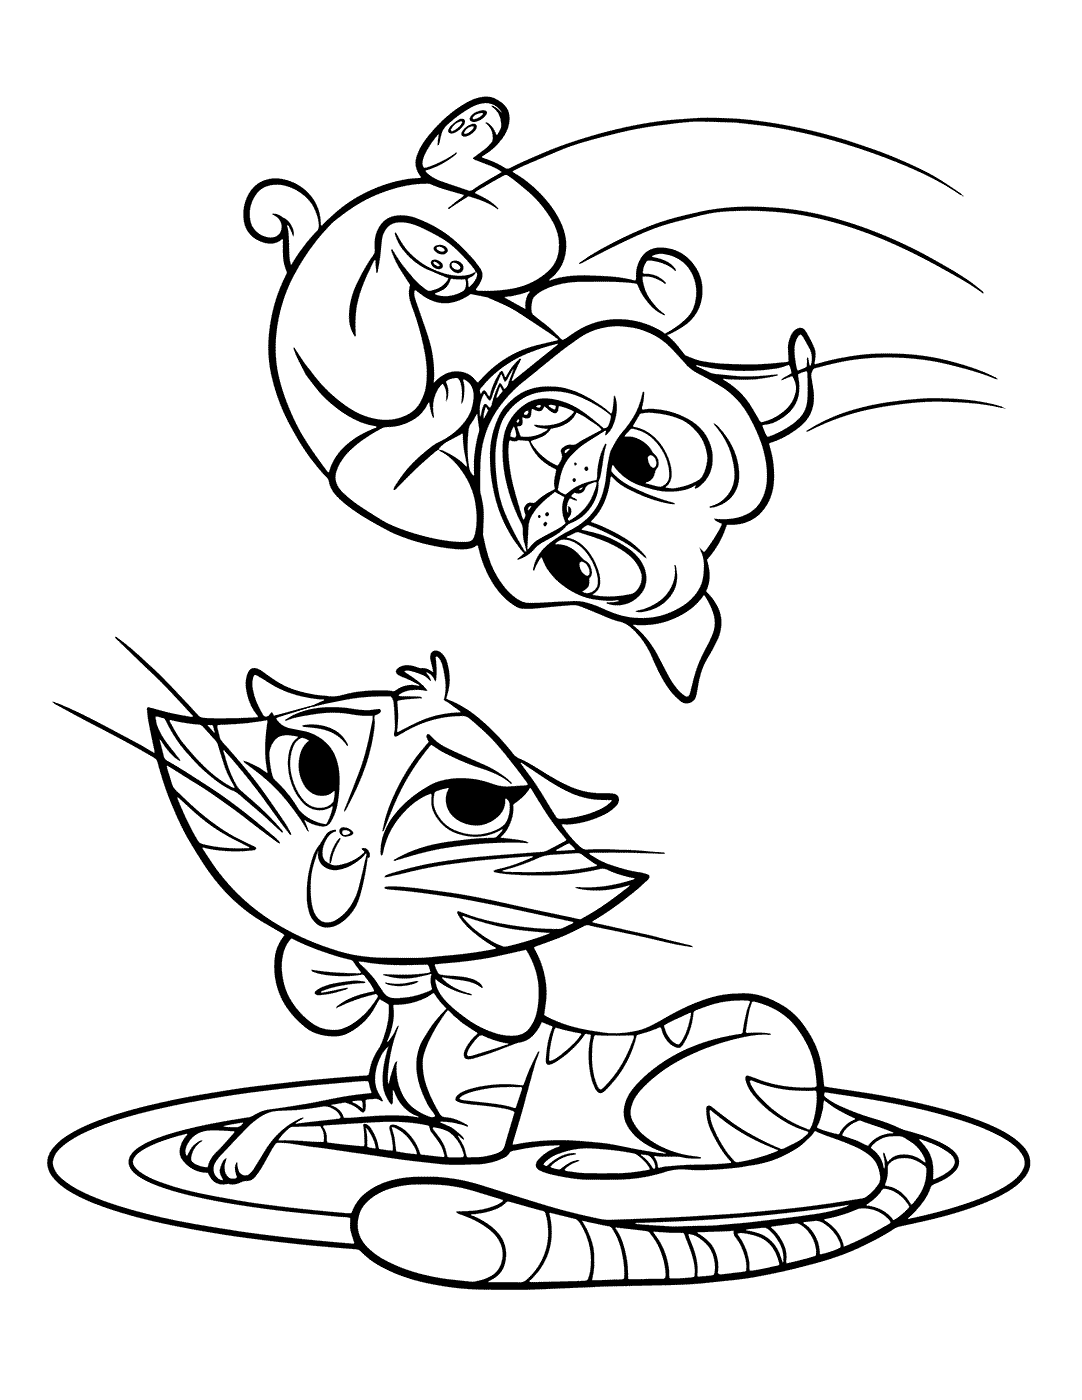 Puppy Dog Pals Coloring Pages Rolly | Puppy coloring pages, Coloring books,  Cartoon coloring pages | 1400x1082